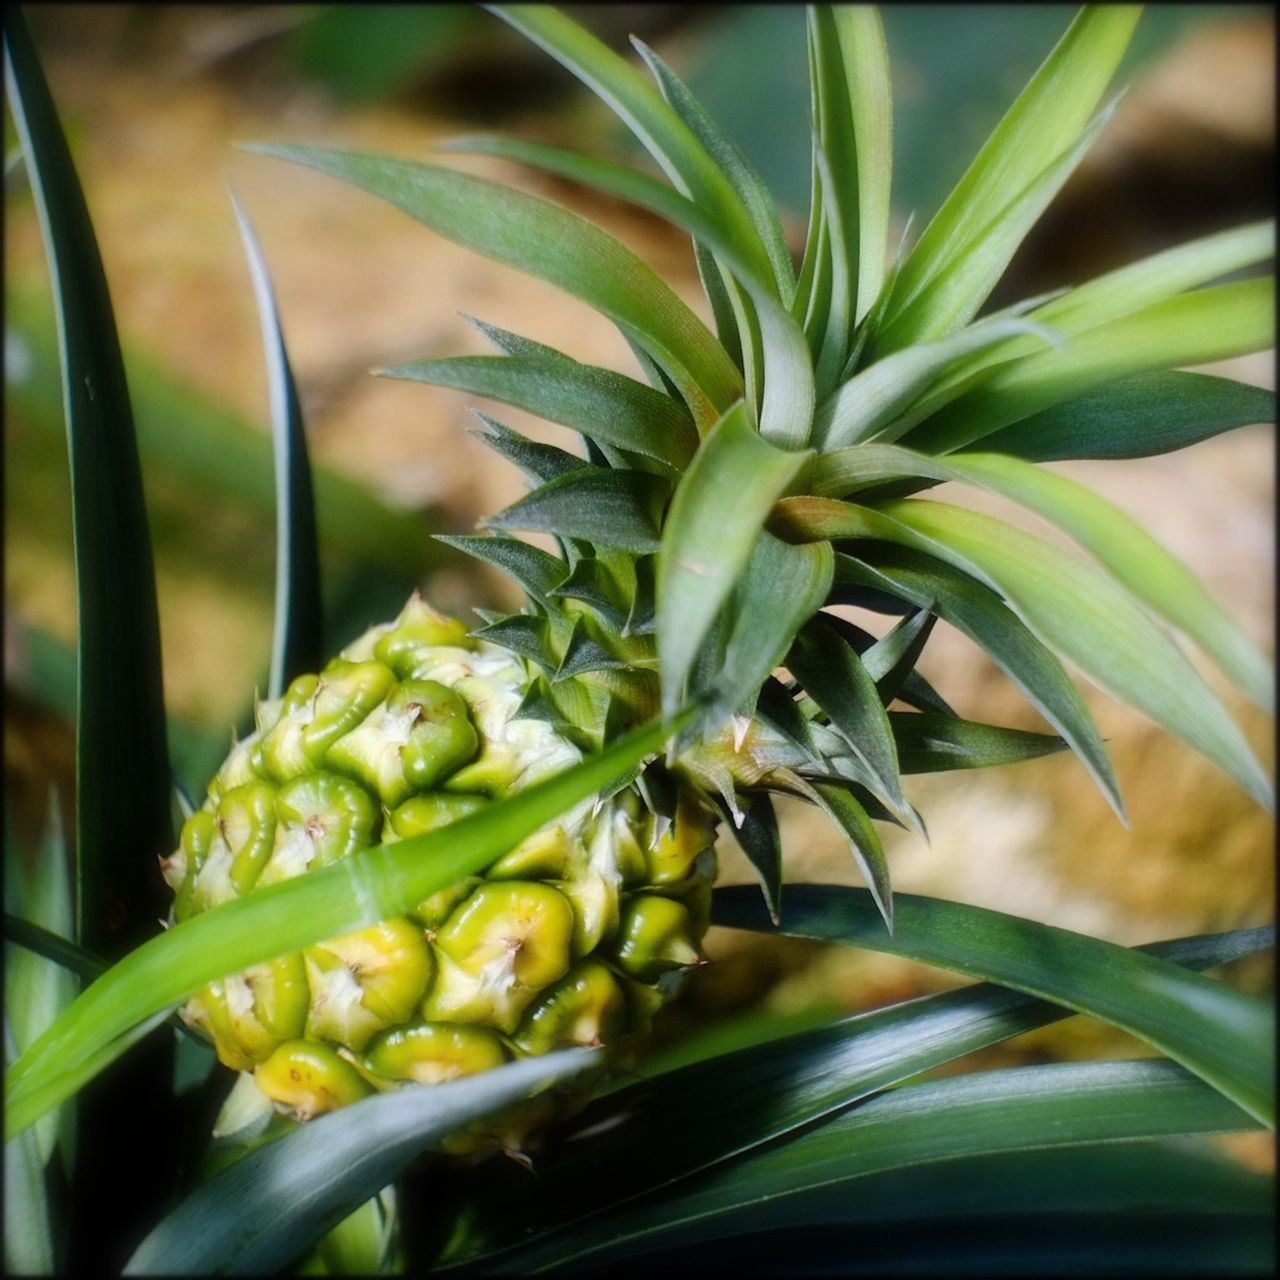 Miniature Pineapple Tropical Fruits Kew Gardens